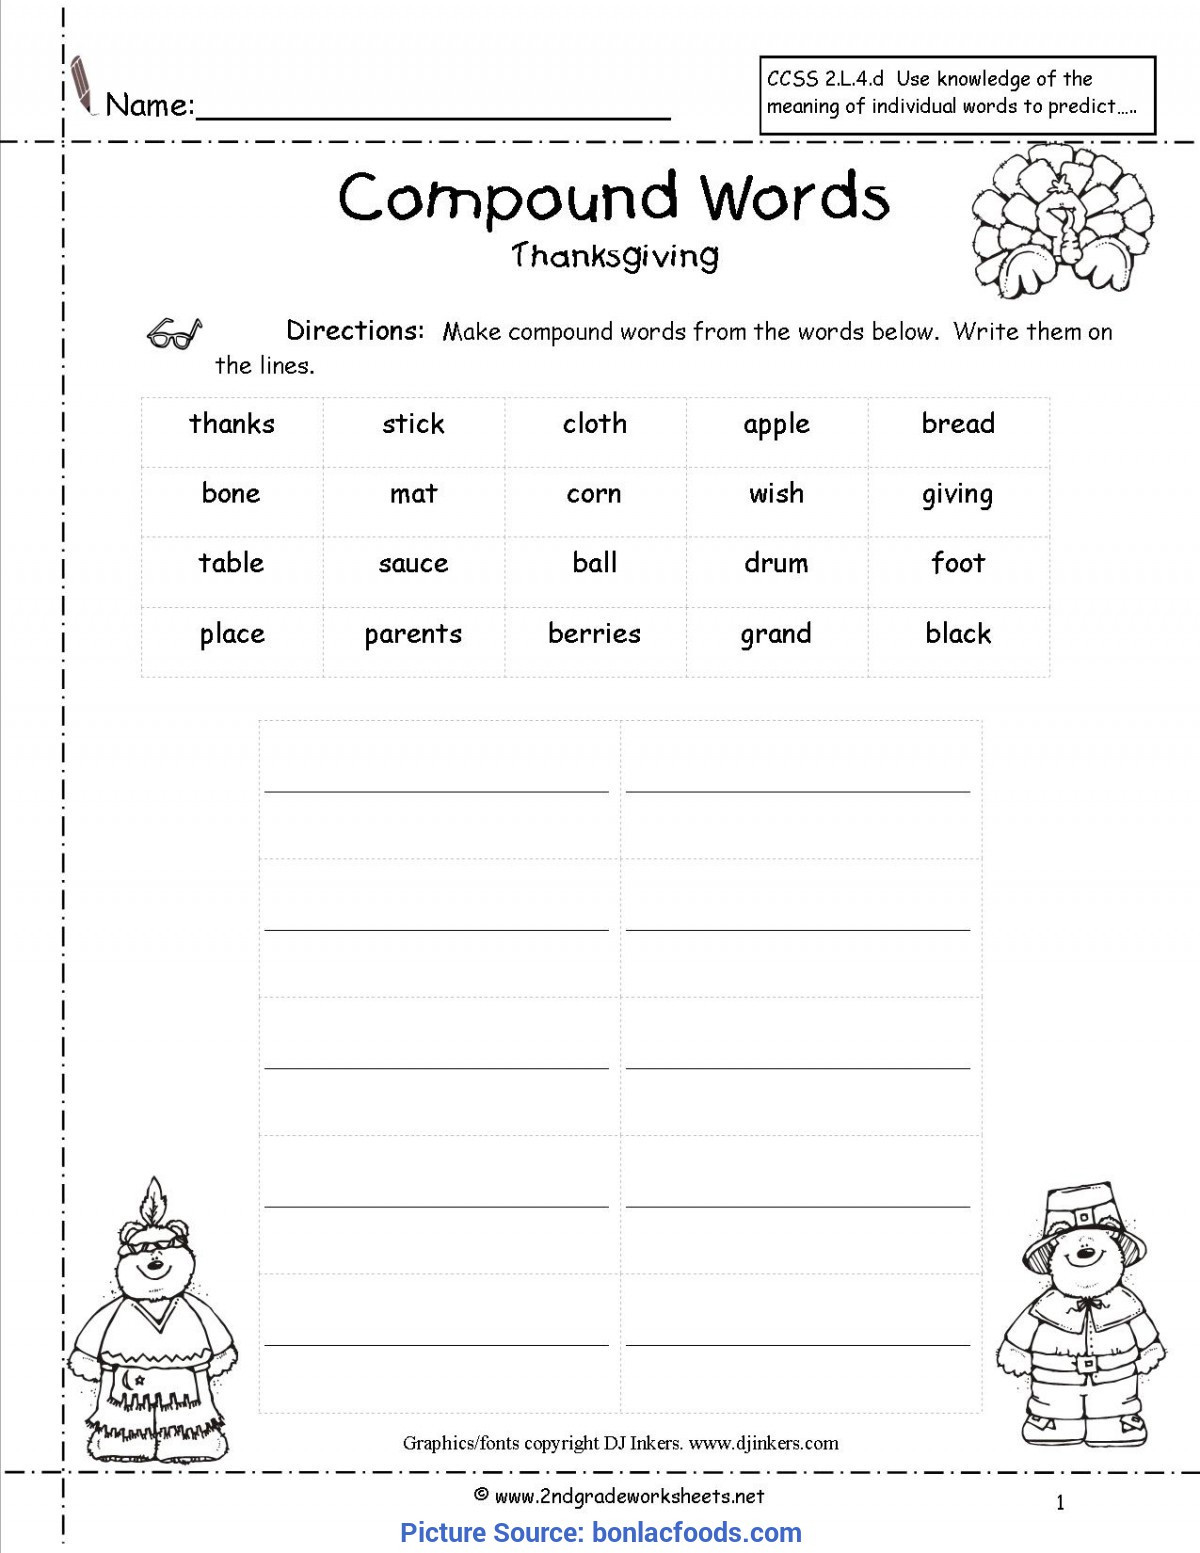 Free Printable Compound Word Worksheets Plex 2nd Grade Lesson Plans for Pound Words Worksheets